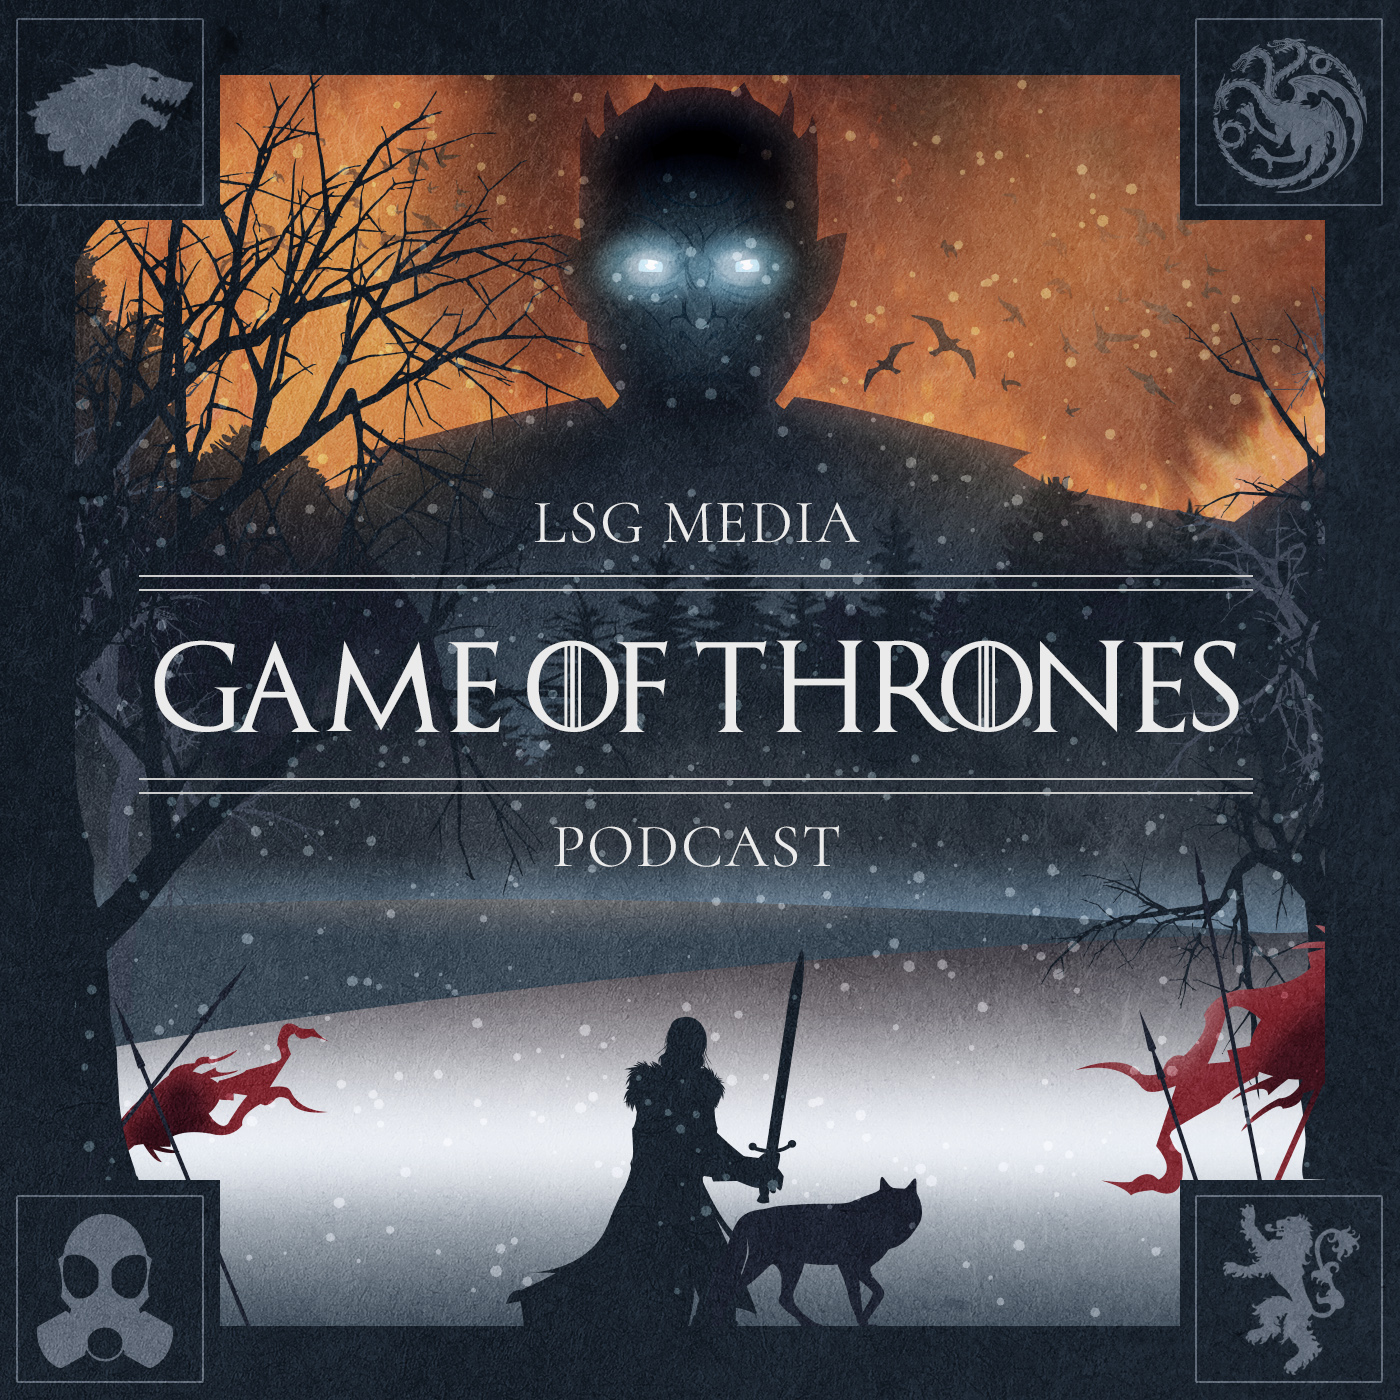 Game of Thrones Podcast show art